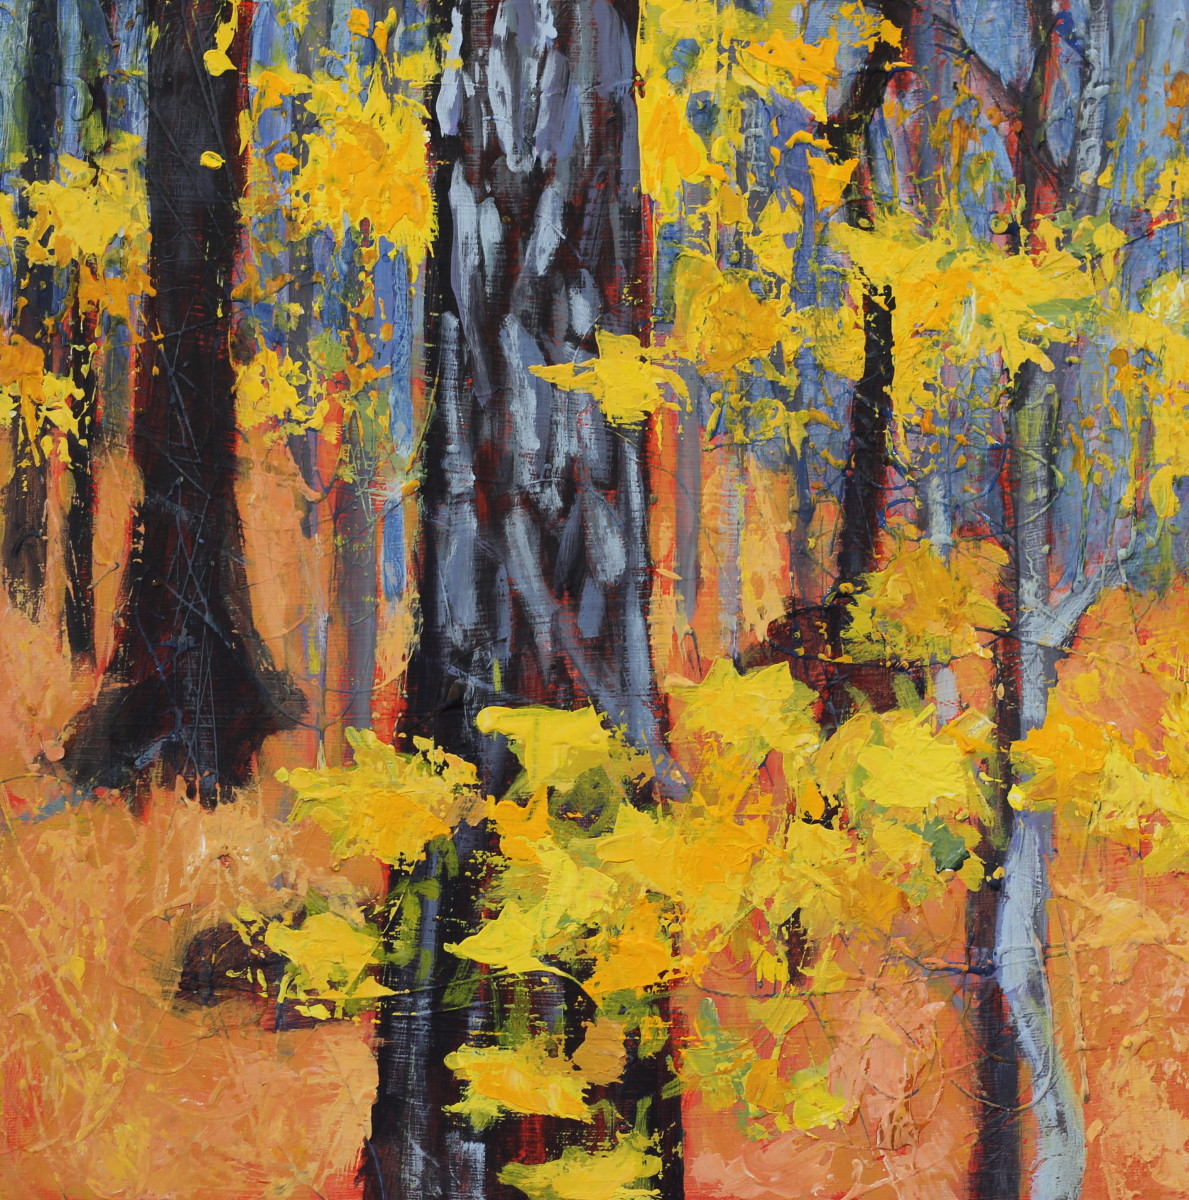 Ode to Yellow by Holly Friesen